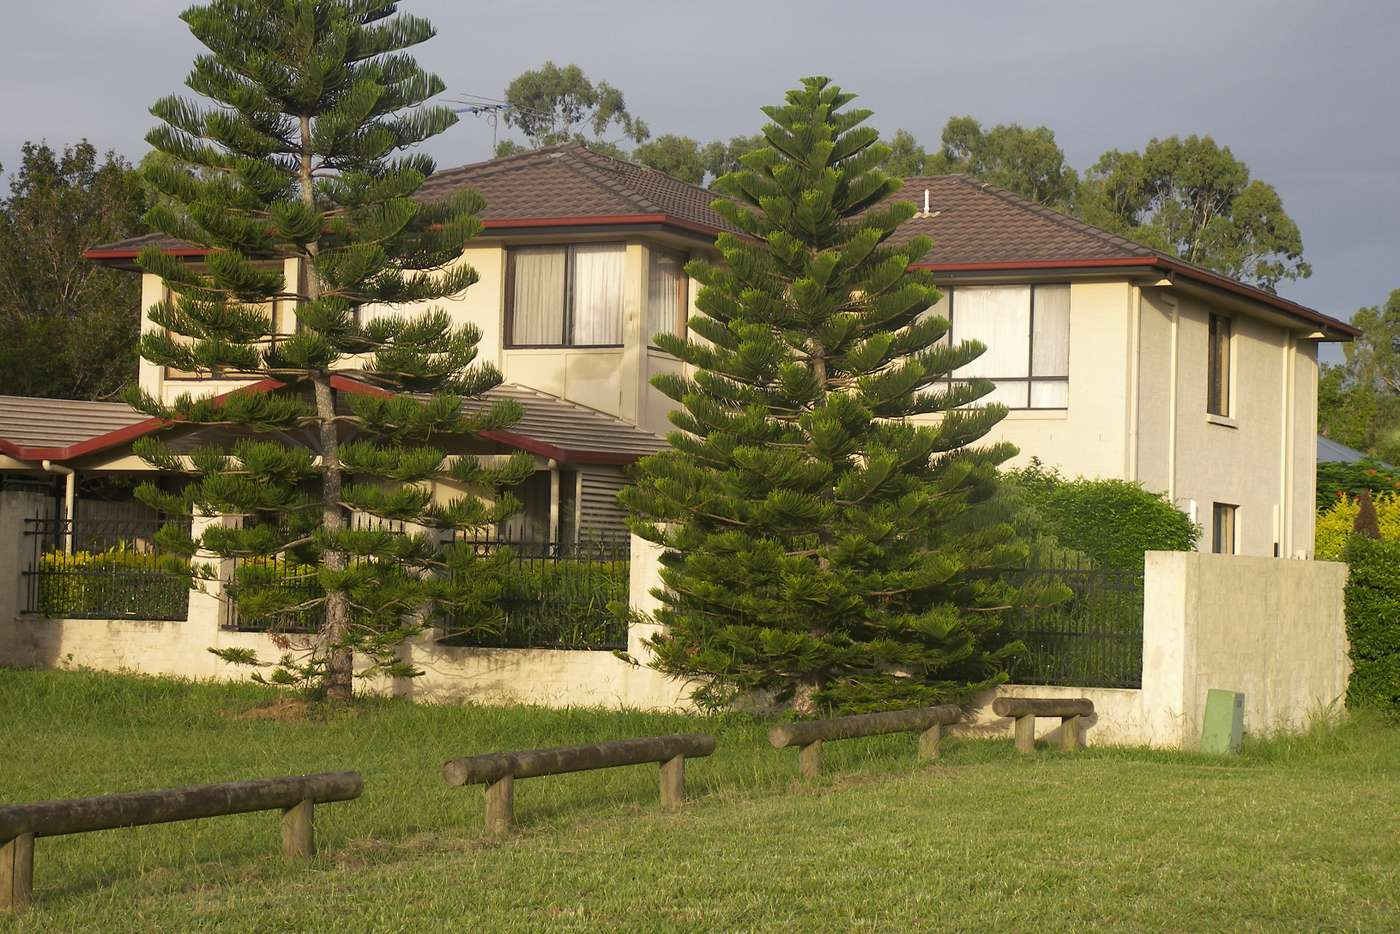 Main view of Homely house listing, 4 Haase Place, Bellbowrie QLD 4070